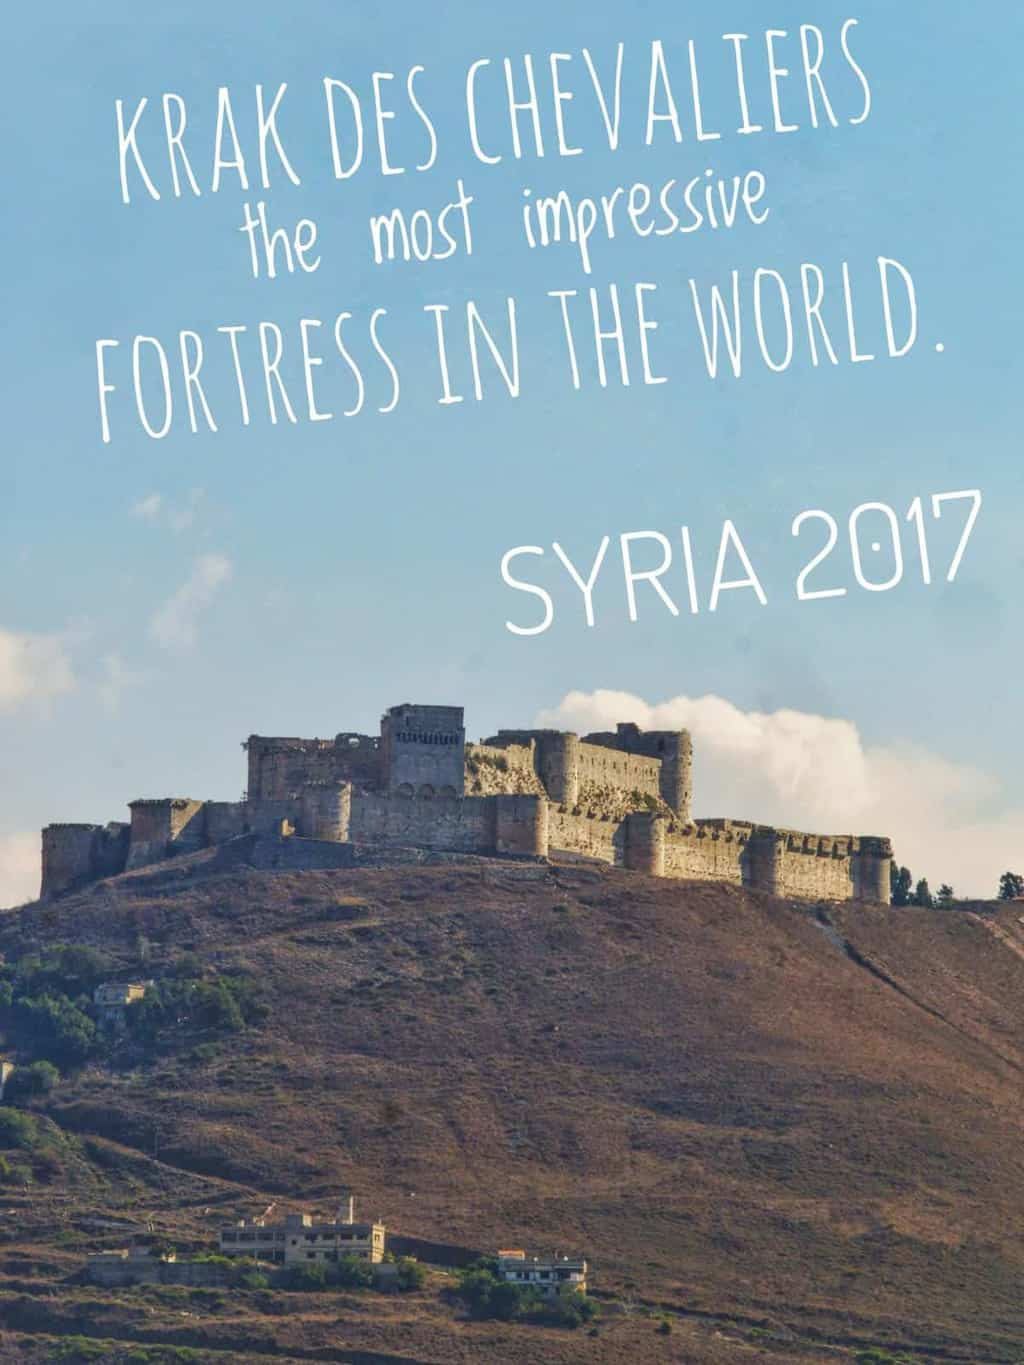 Krak des Chevaliers in the Homs province in Syria is probably the most important and best preserved medieval castles in the world. It was built during thefirst Crusade 1031